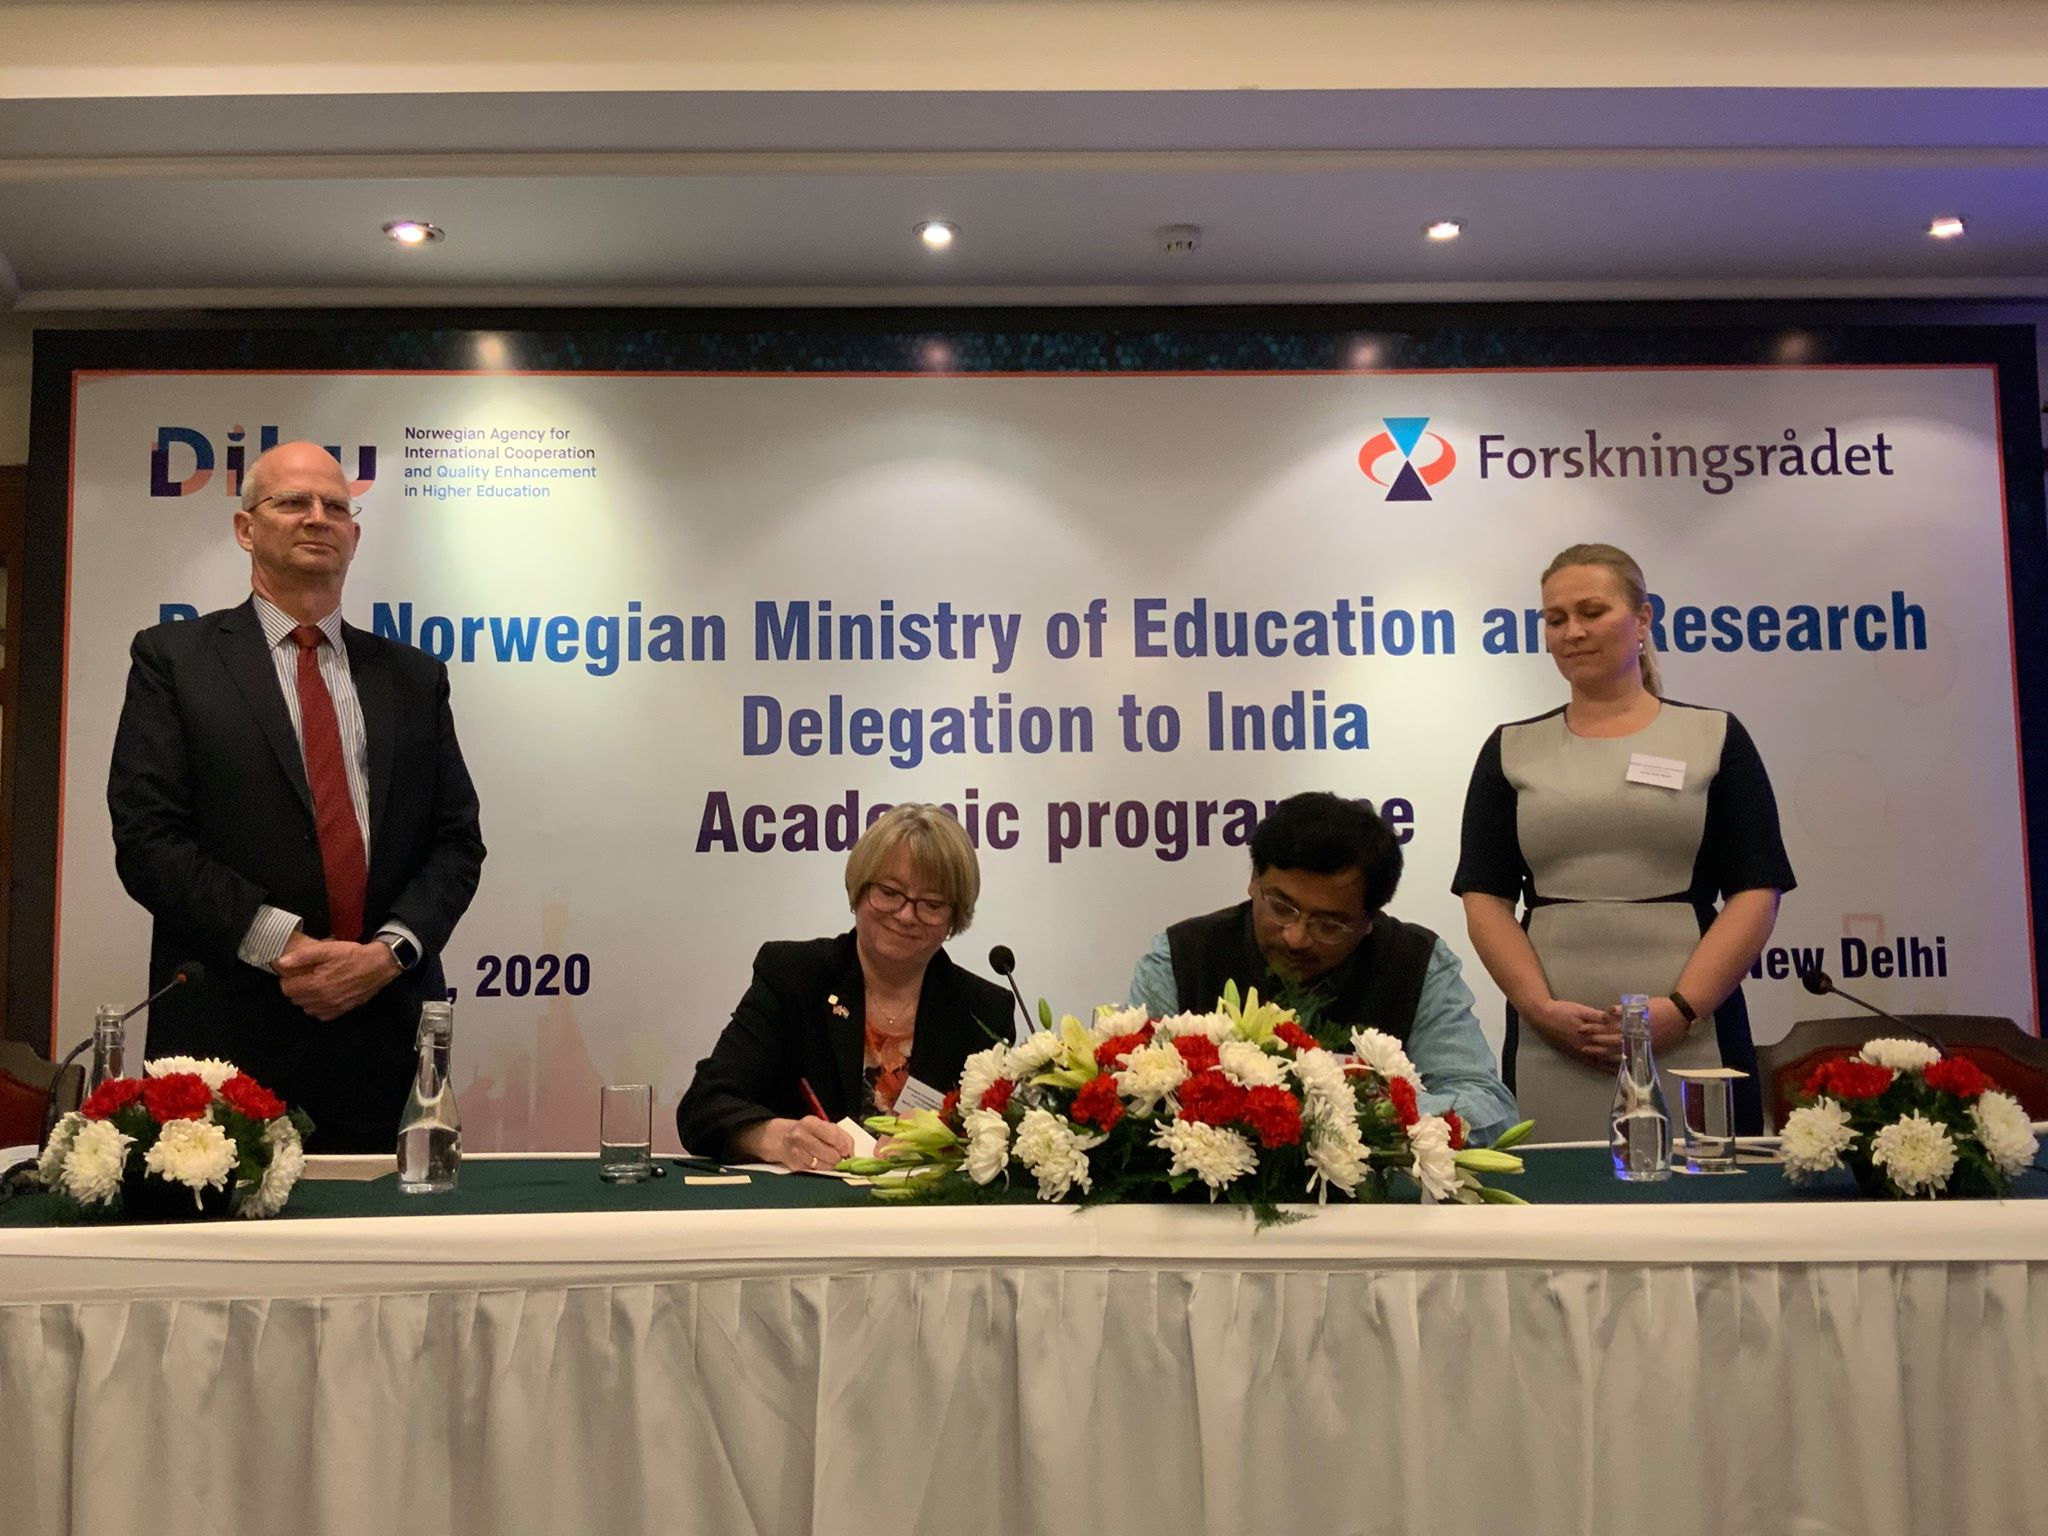 The agreements were signed in New Delhi during the visit of a delegation of prominent education and research institutions from Norway led by Anne Line Wold, director-general, Norwegian ministry of education and research.